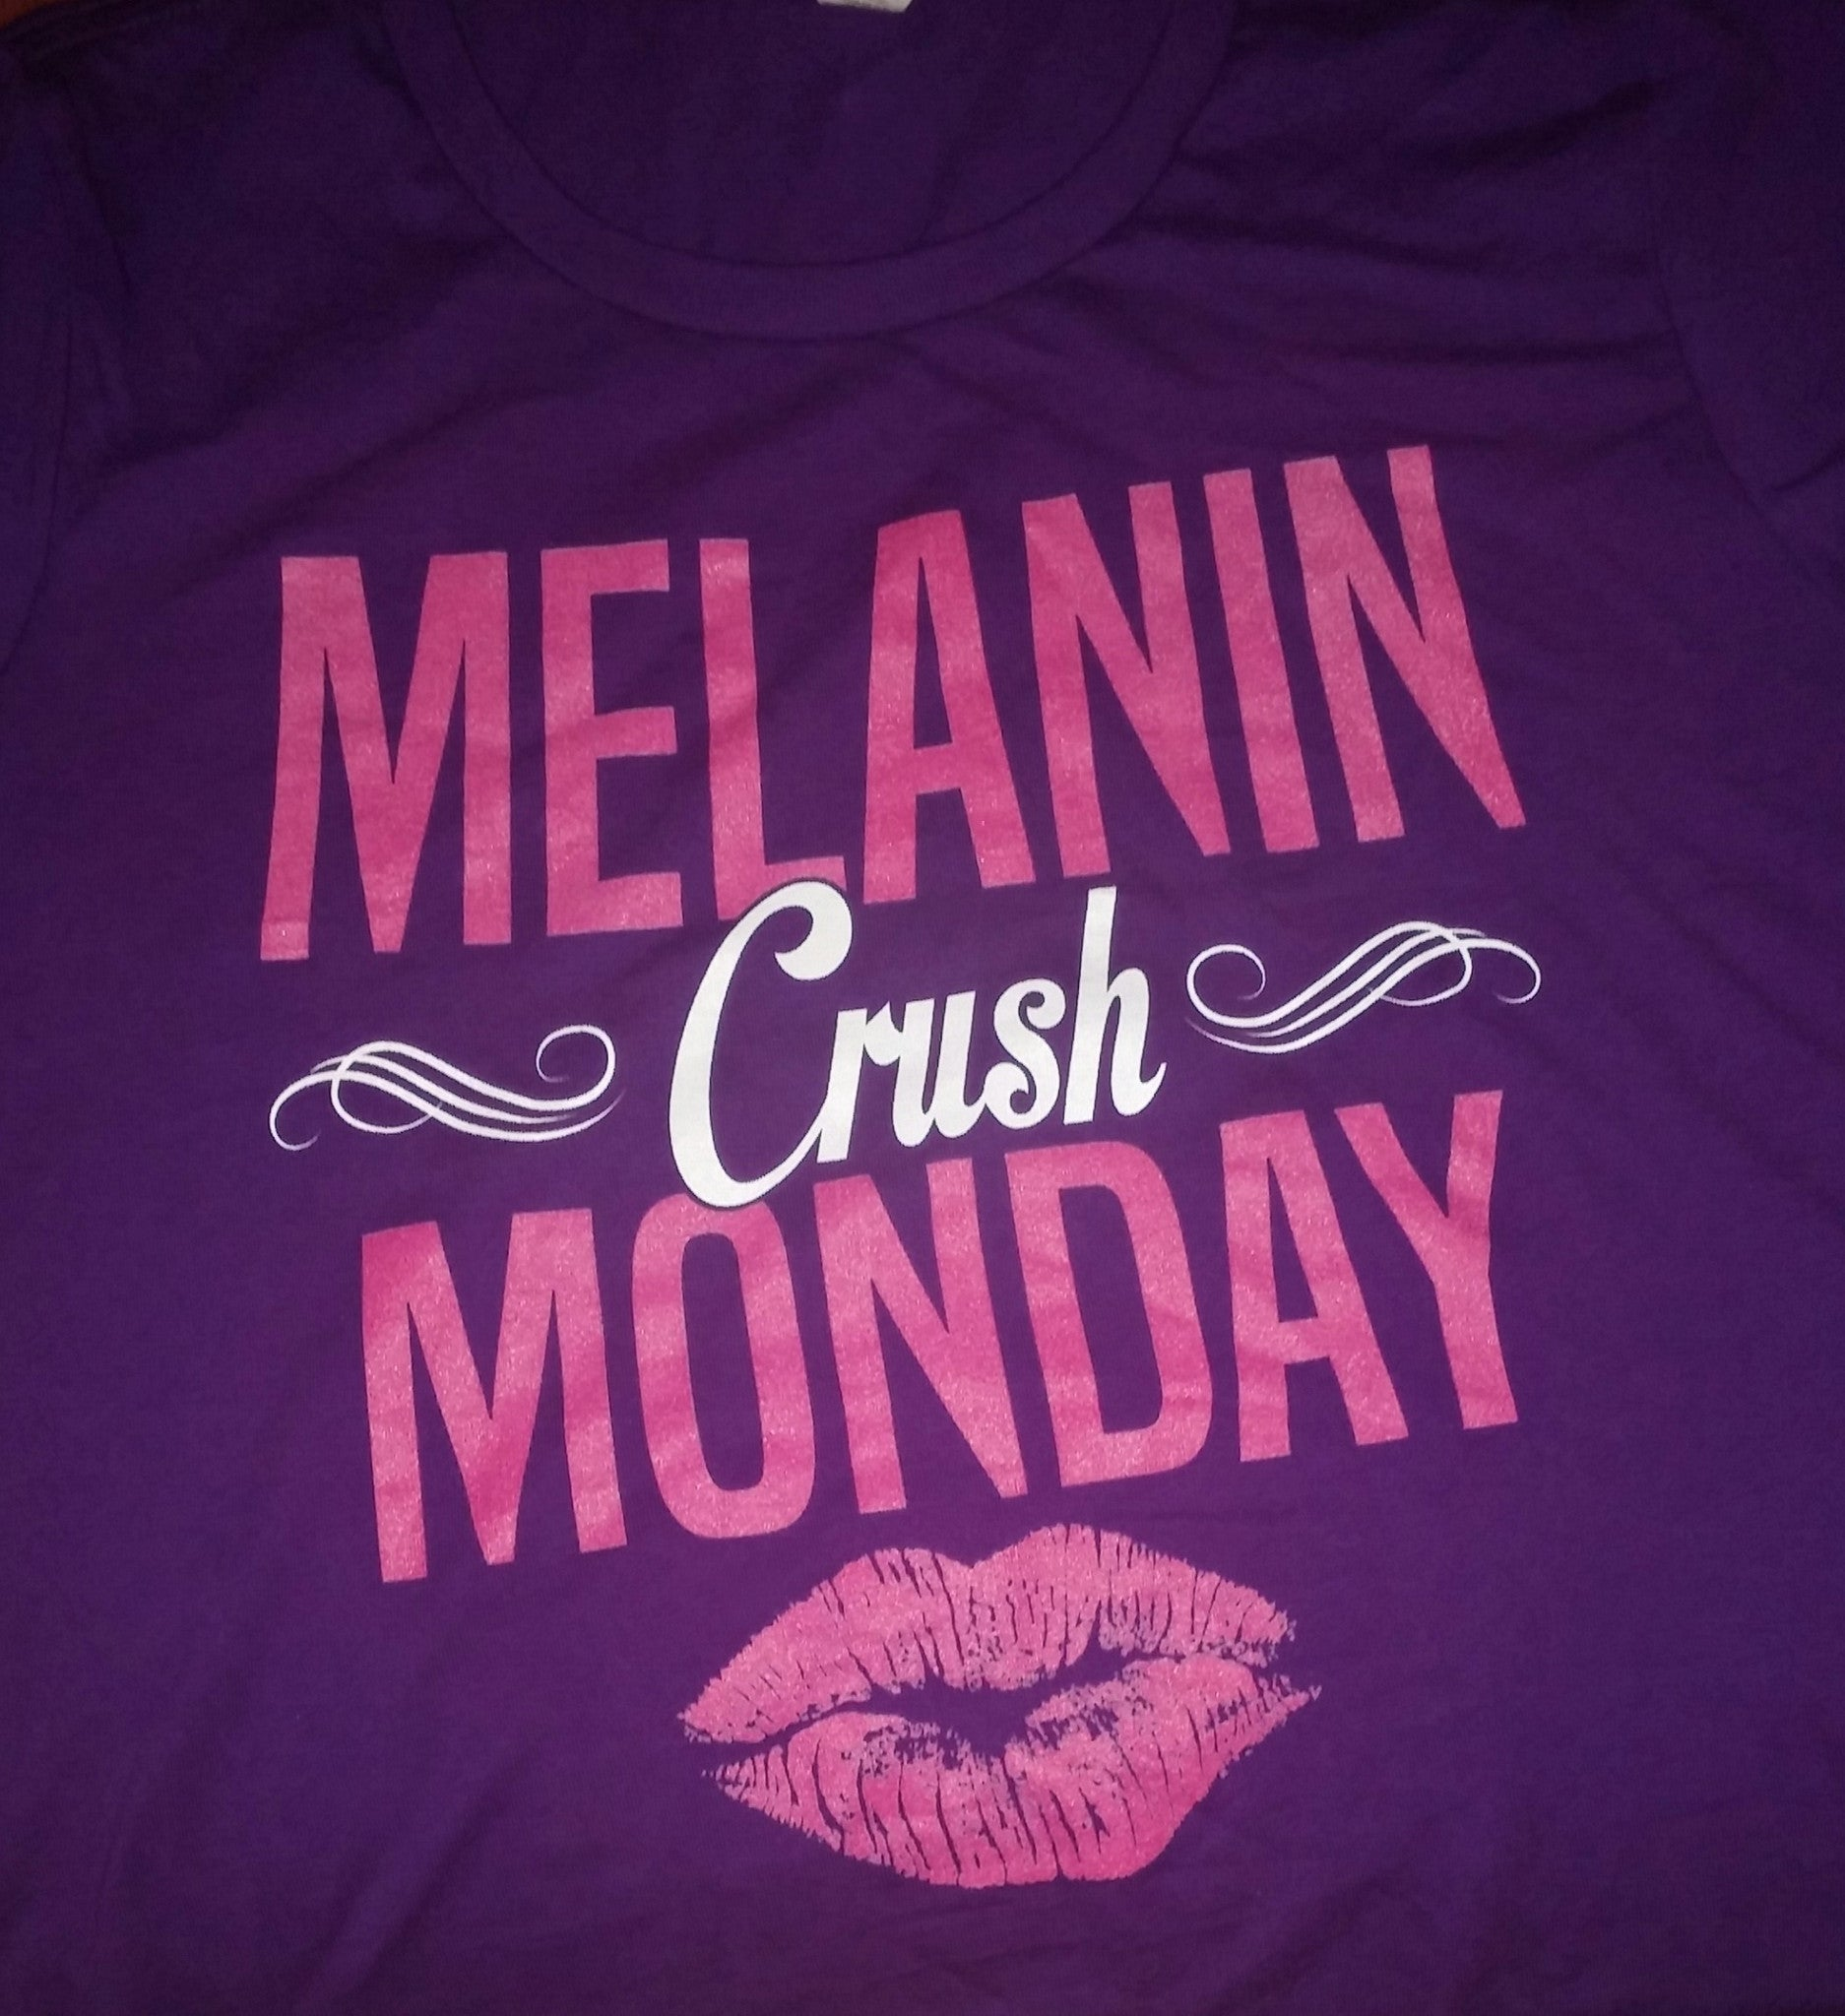 Melanin Crush Monday Tshirt - La Bella Milan Virgin Hair